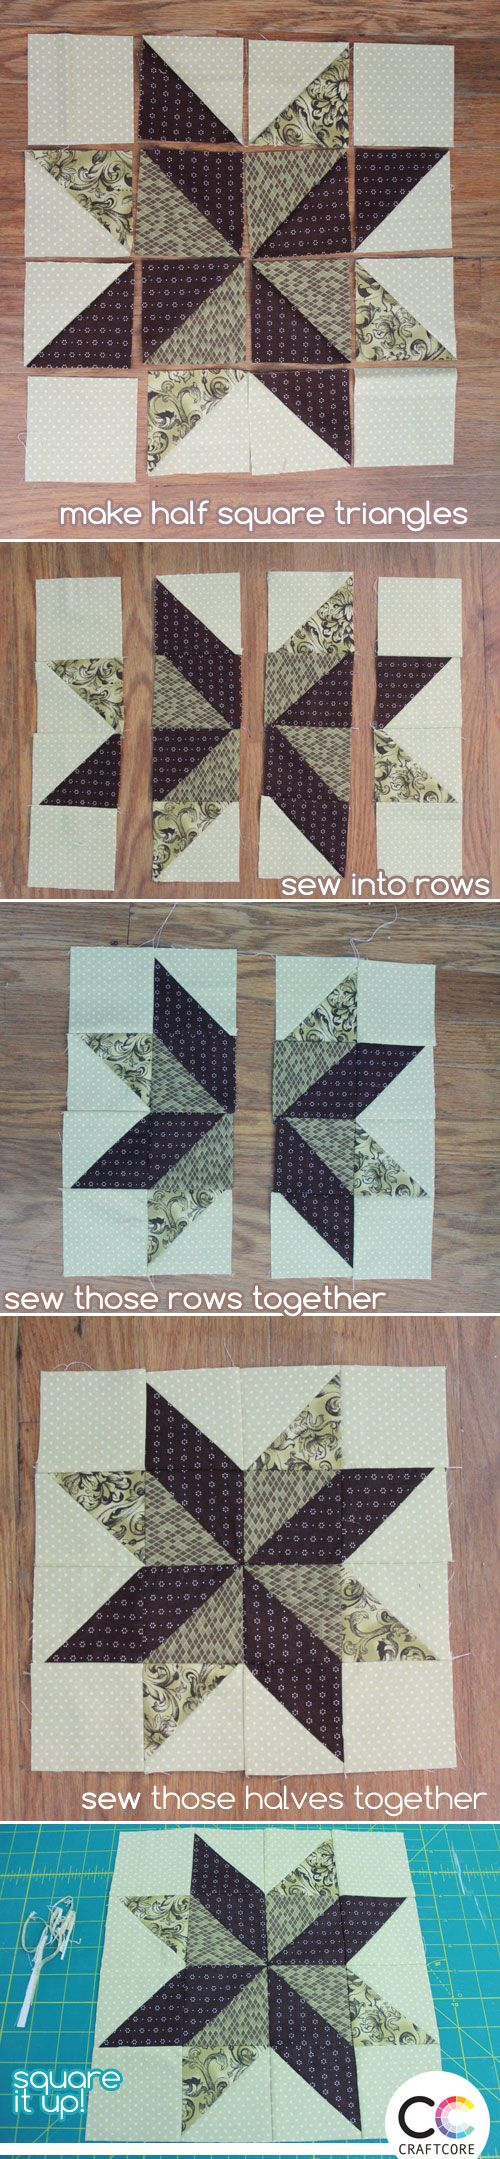 How to Assemble the 8 Point Diamond Quilt Block, made out of HST units! http://craftcore.ca/2015-08-11-how-to-make-a-quilt-label-tag/?utm_content=bufferf026f&utm_medium=social&utm_source=pinterest.com&utm_campaign=buffer #quilting